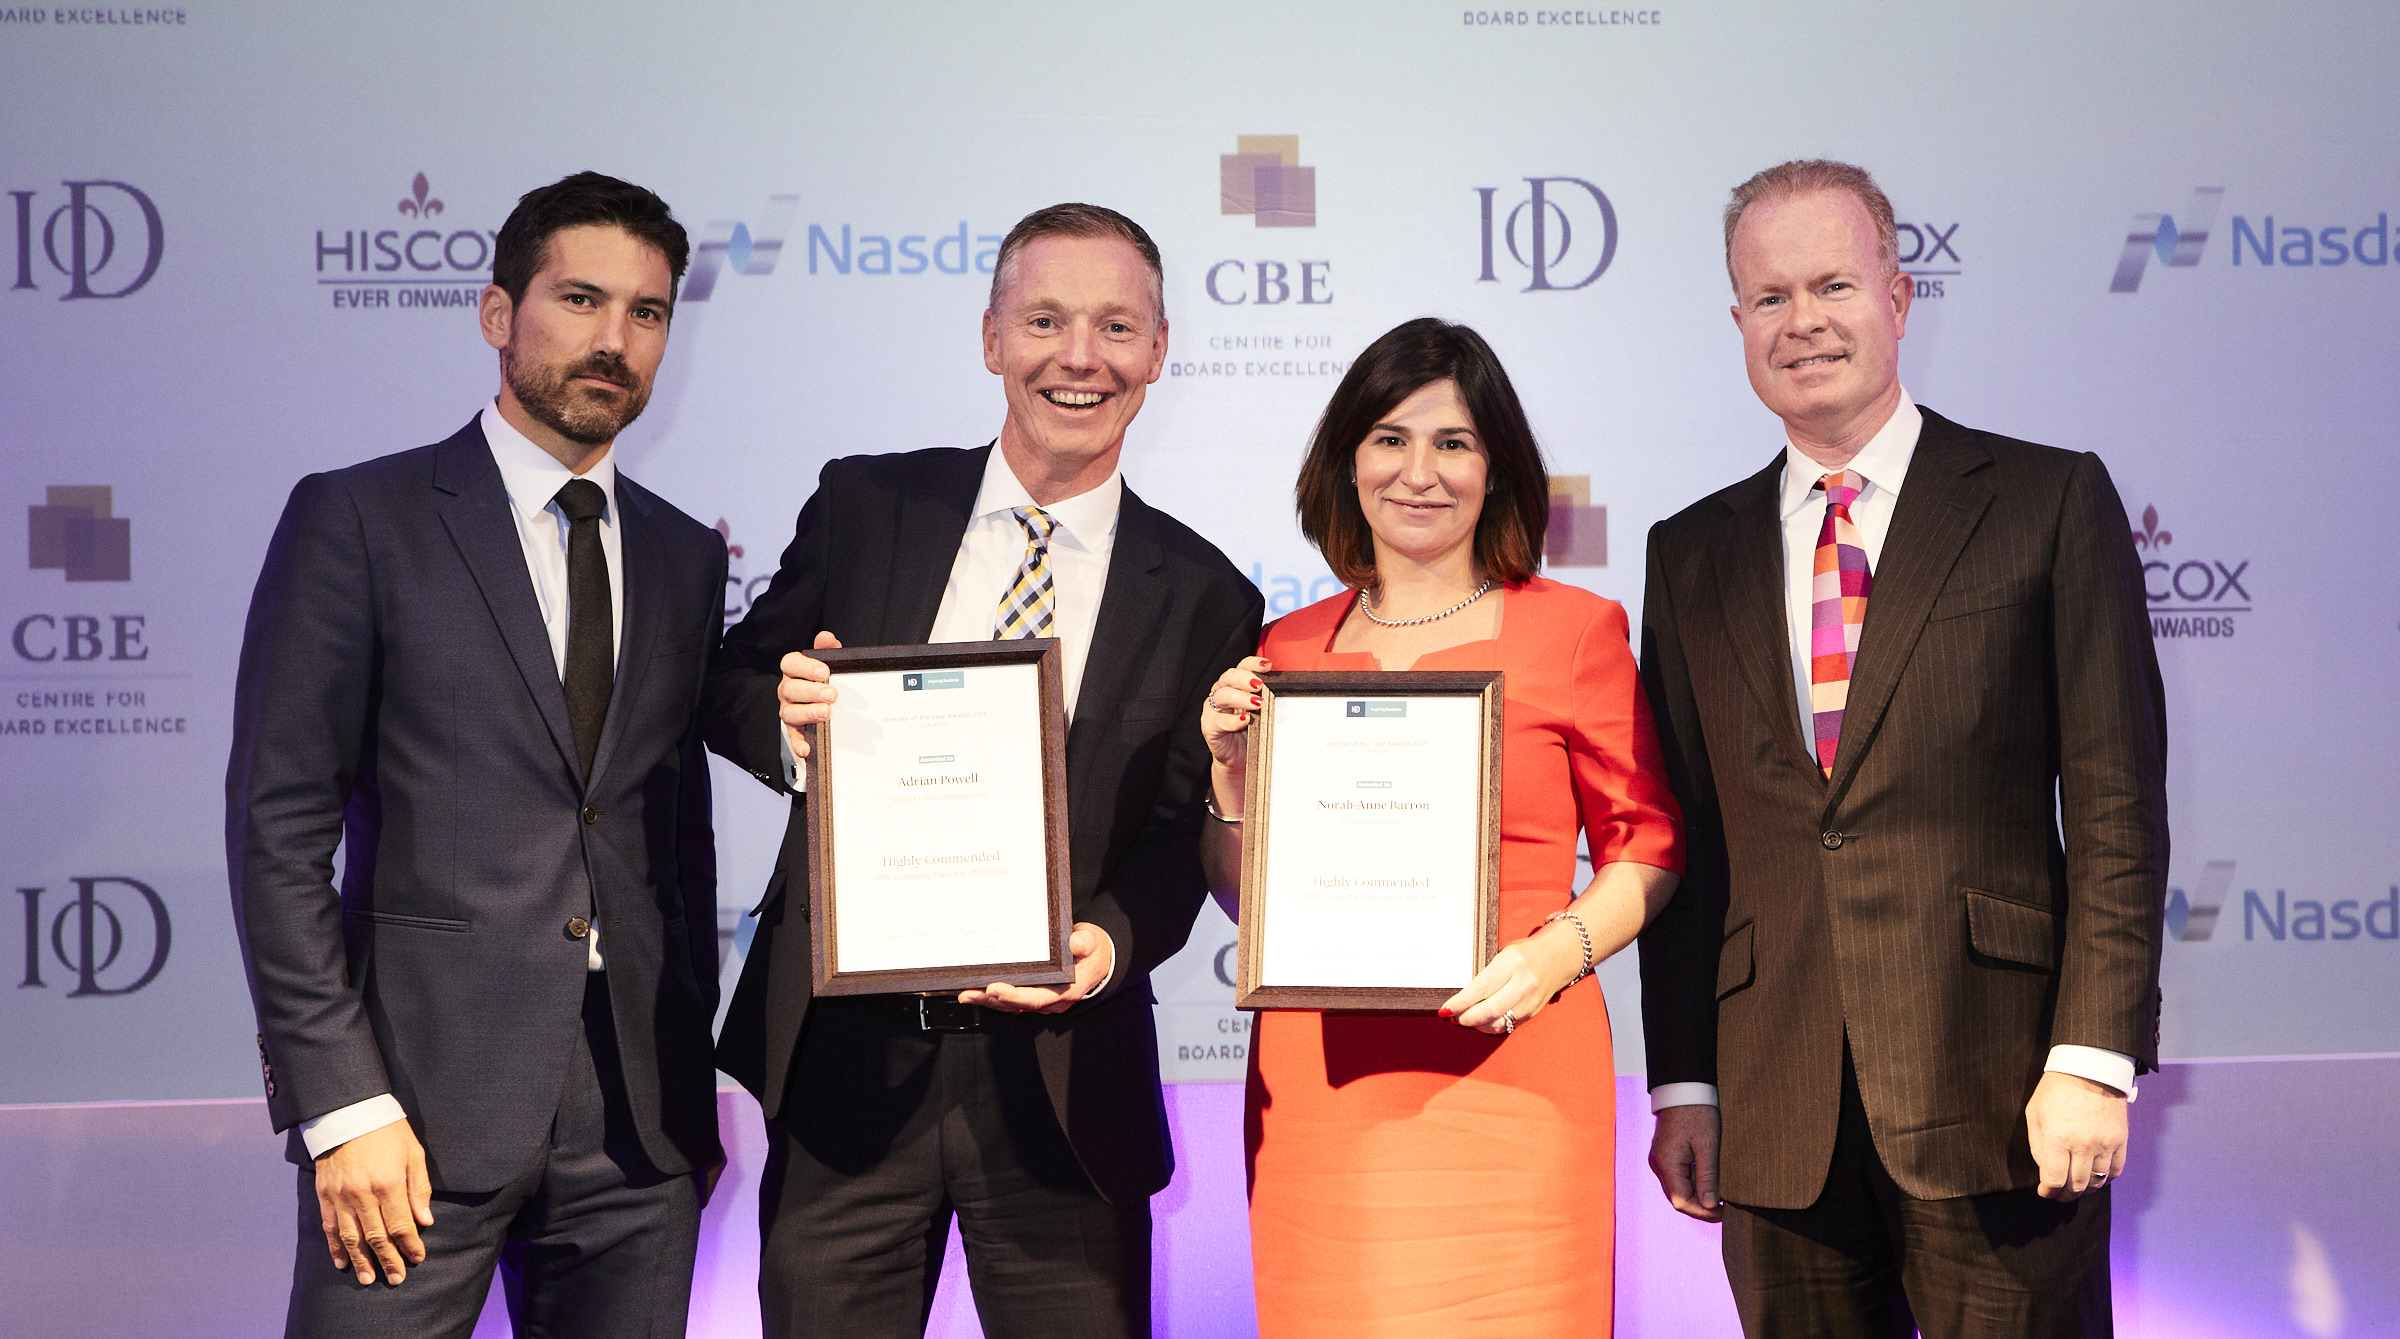 Active director awarded IoD Highly Commended Award